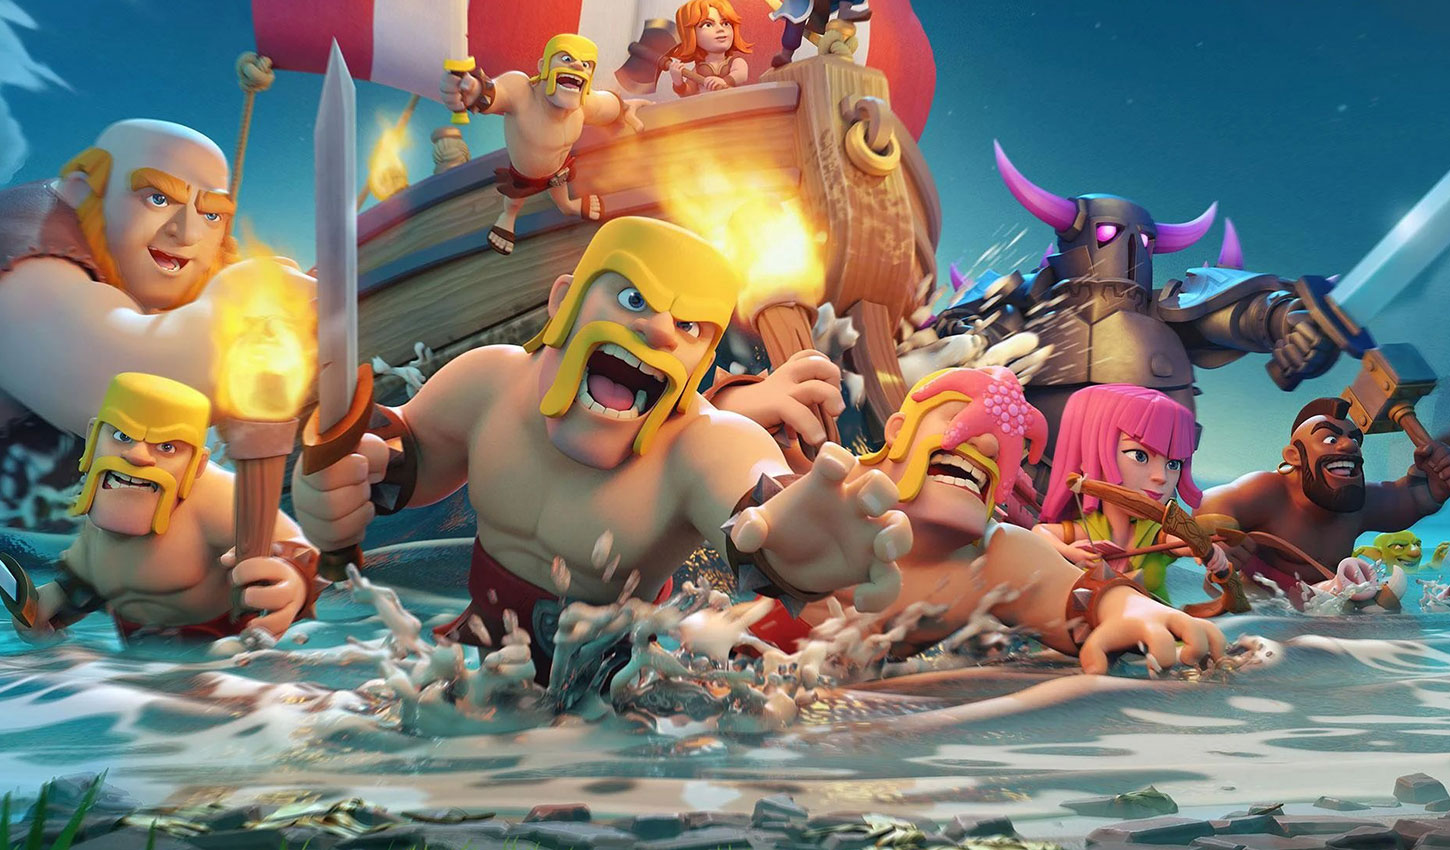 Clash of Clans: How to Get Free Gems